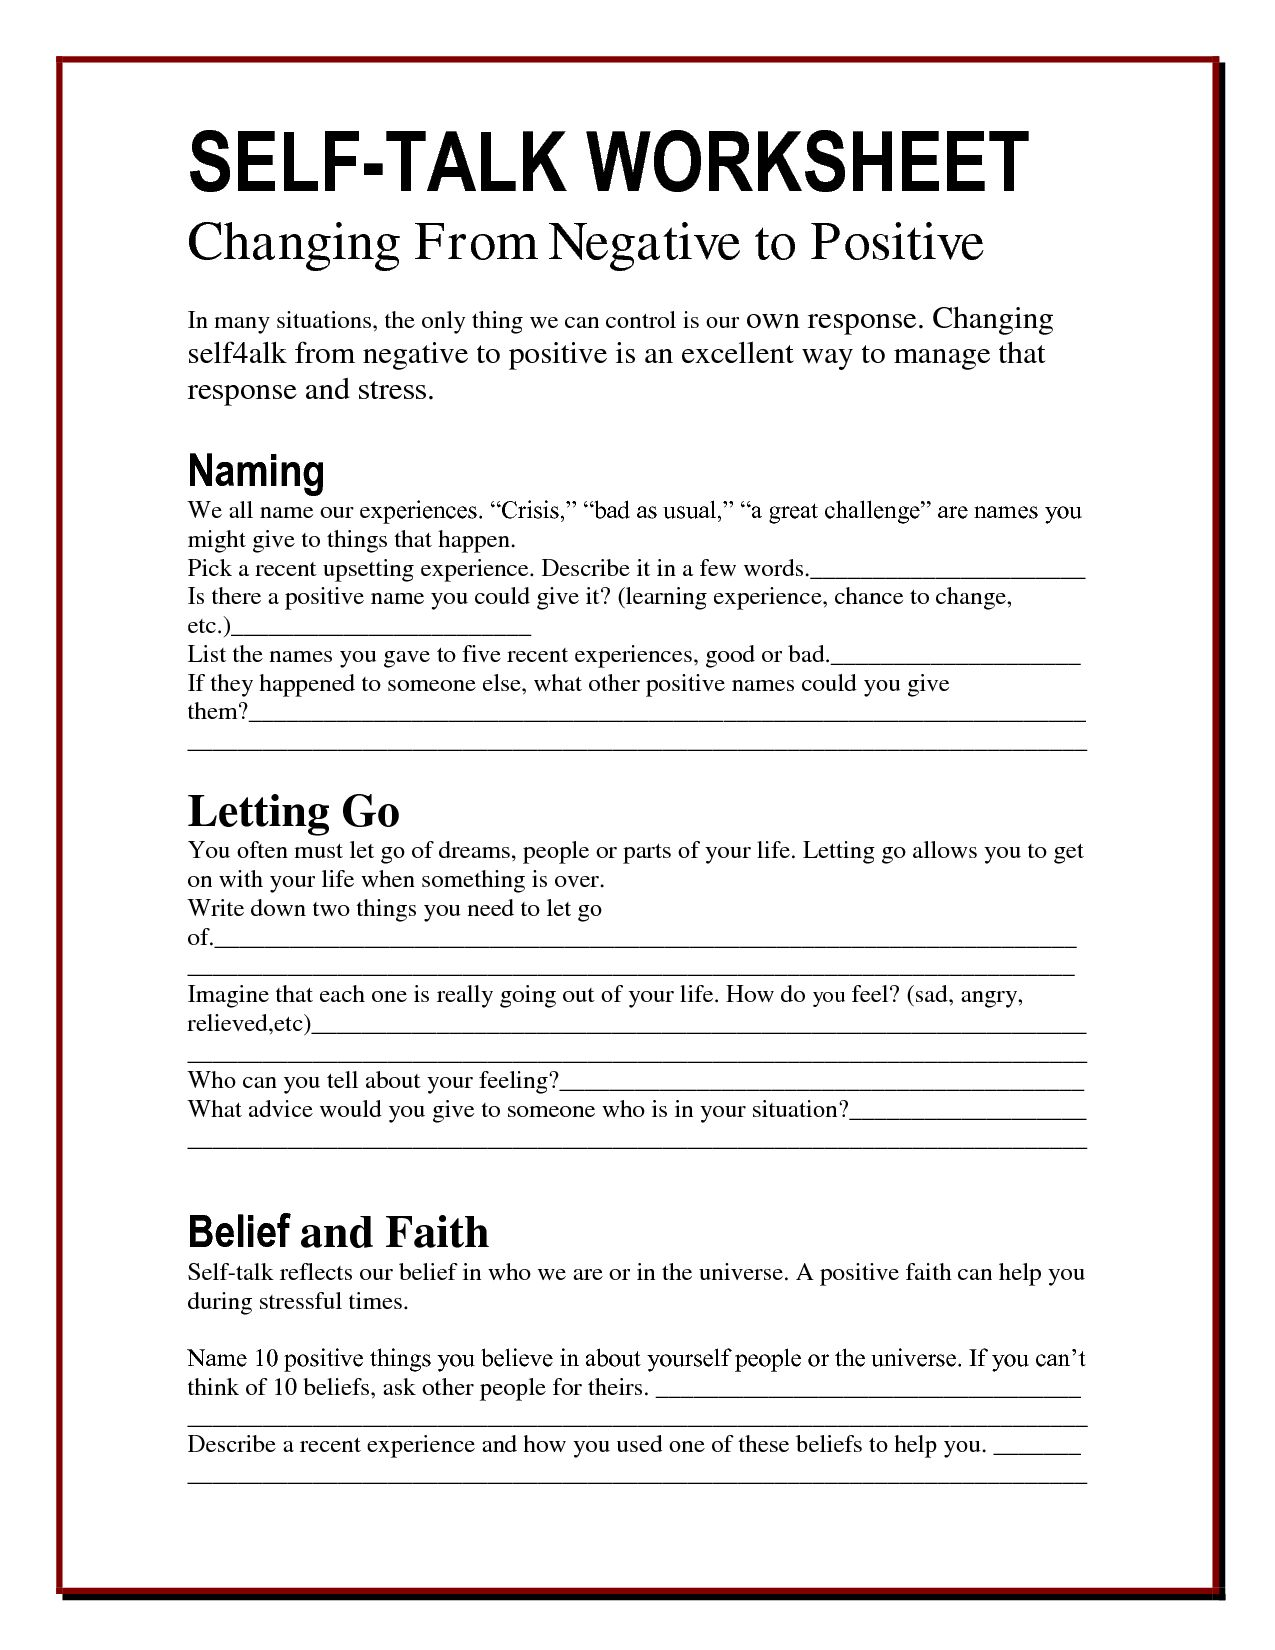 Uncategorized Cbt Worksheets cbt worksheets for depression work pinterest image from httpimg docstoccdn comthumborig counseling worksheetscounseling activitiescognitive behavioral therapy